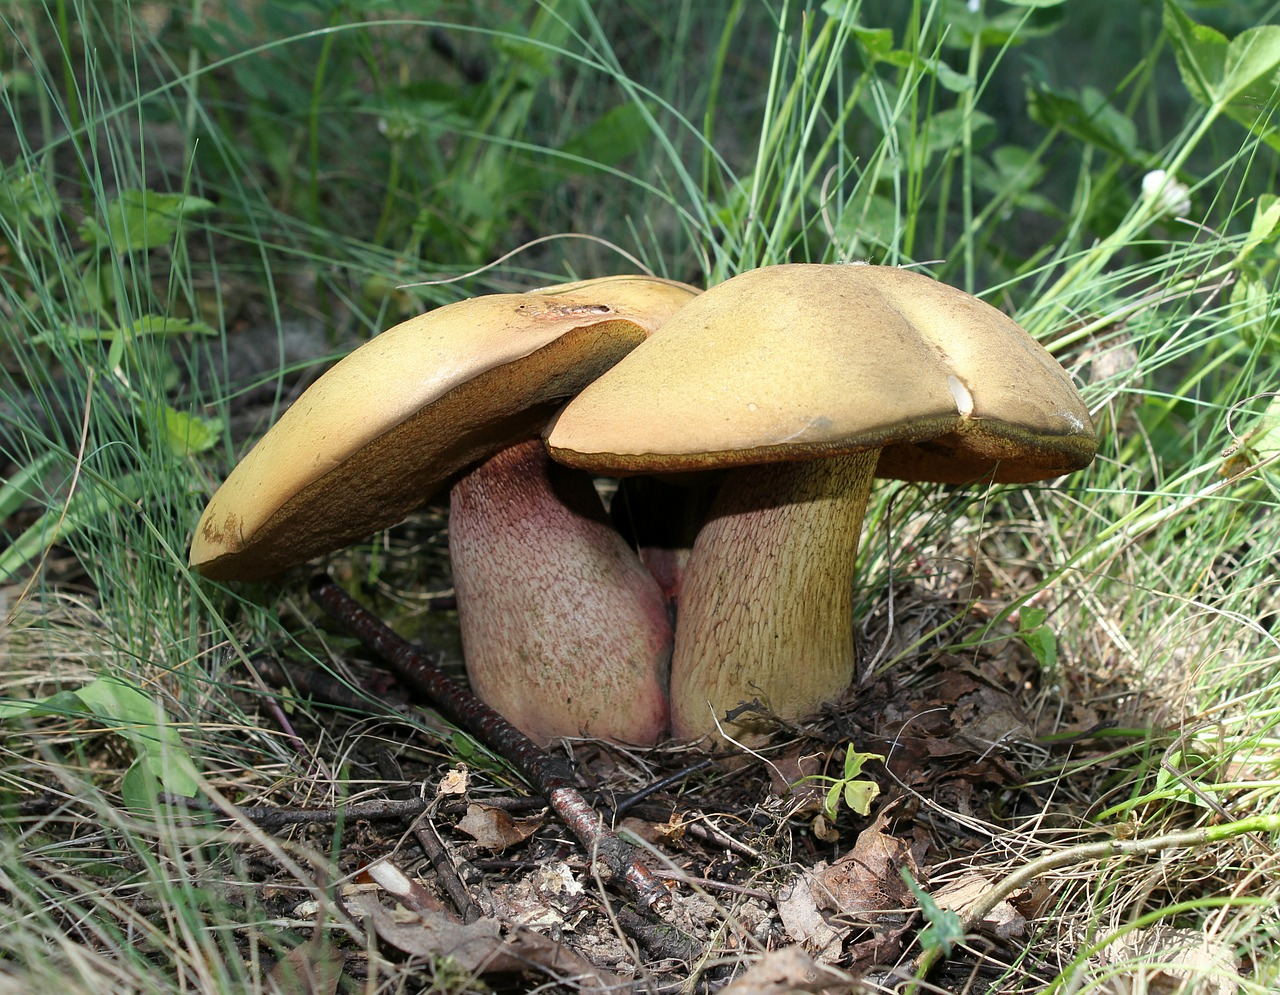 power shaft witches suillus mushroom boletus luridus free photo